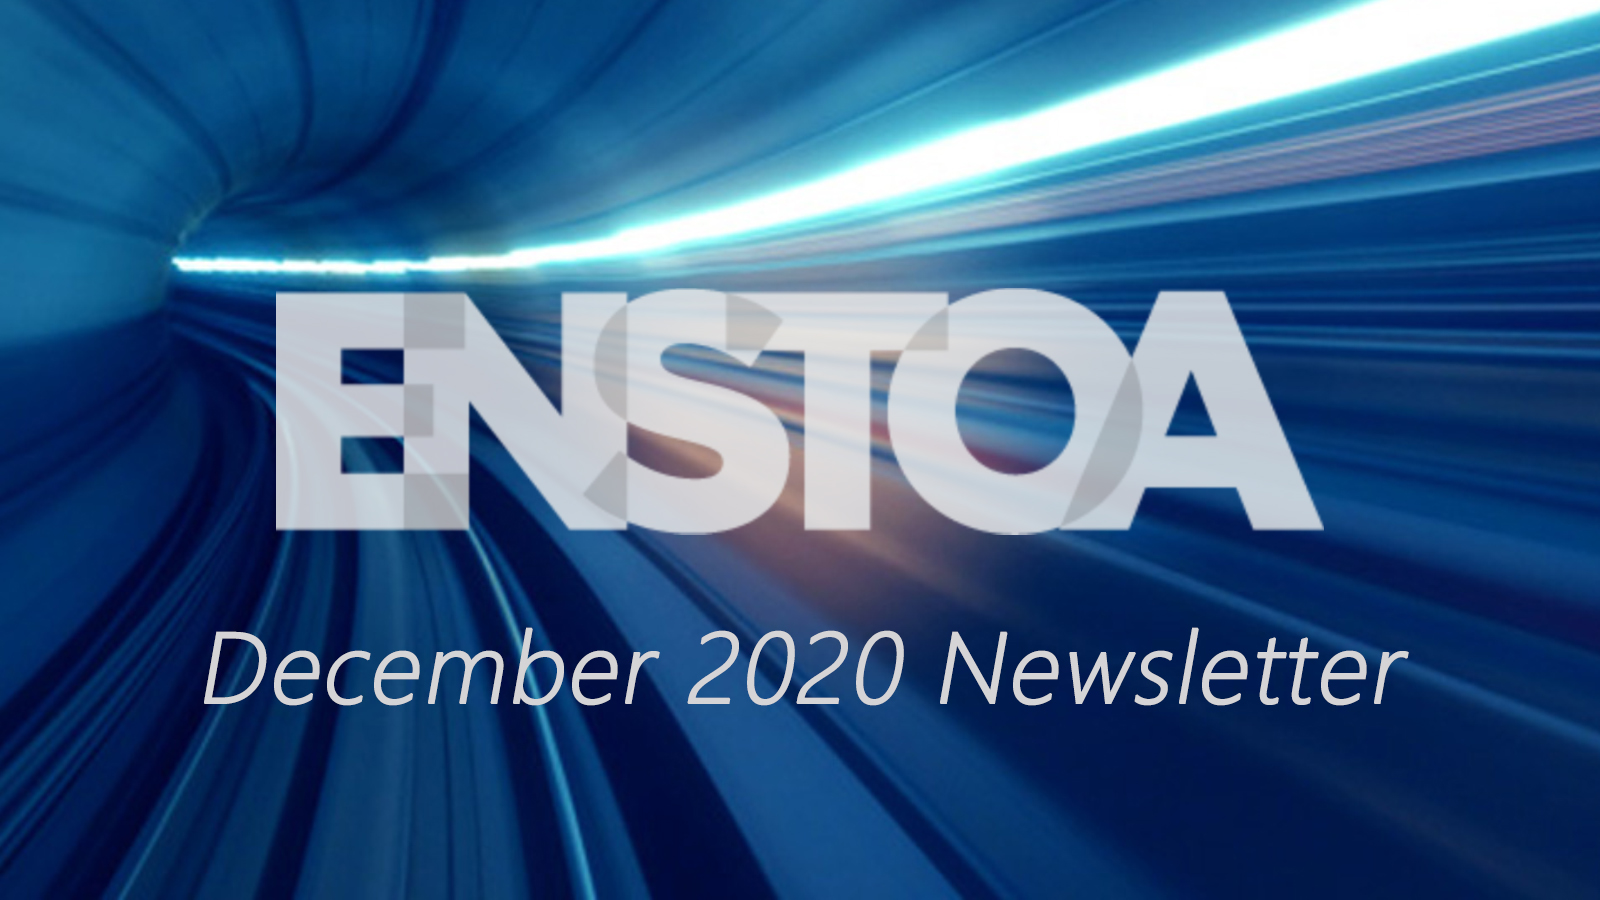 December 2020 Newsletter: 2021, we're waiting for you with open arms